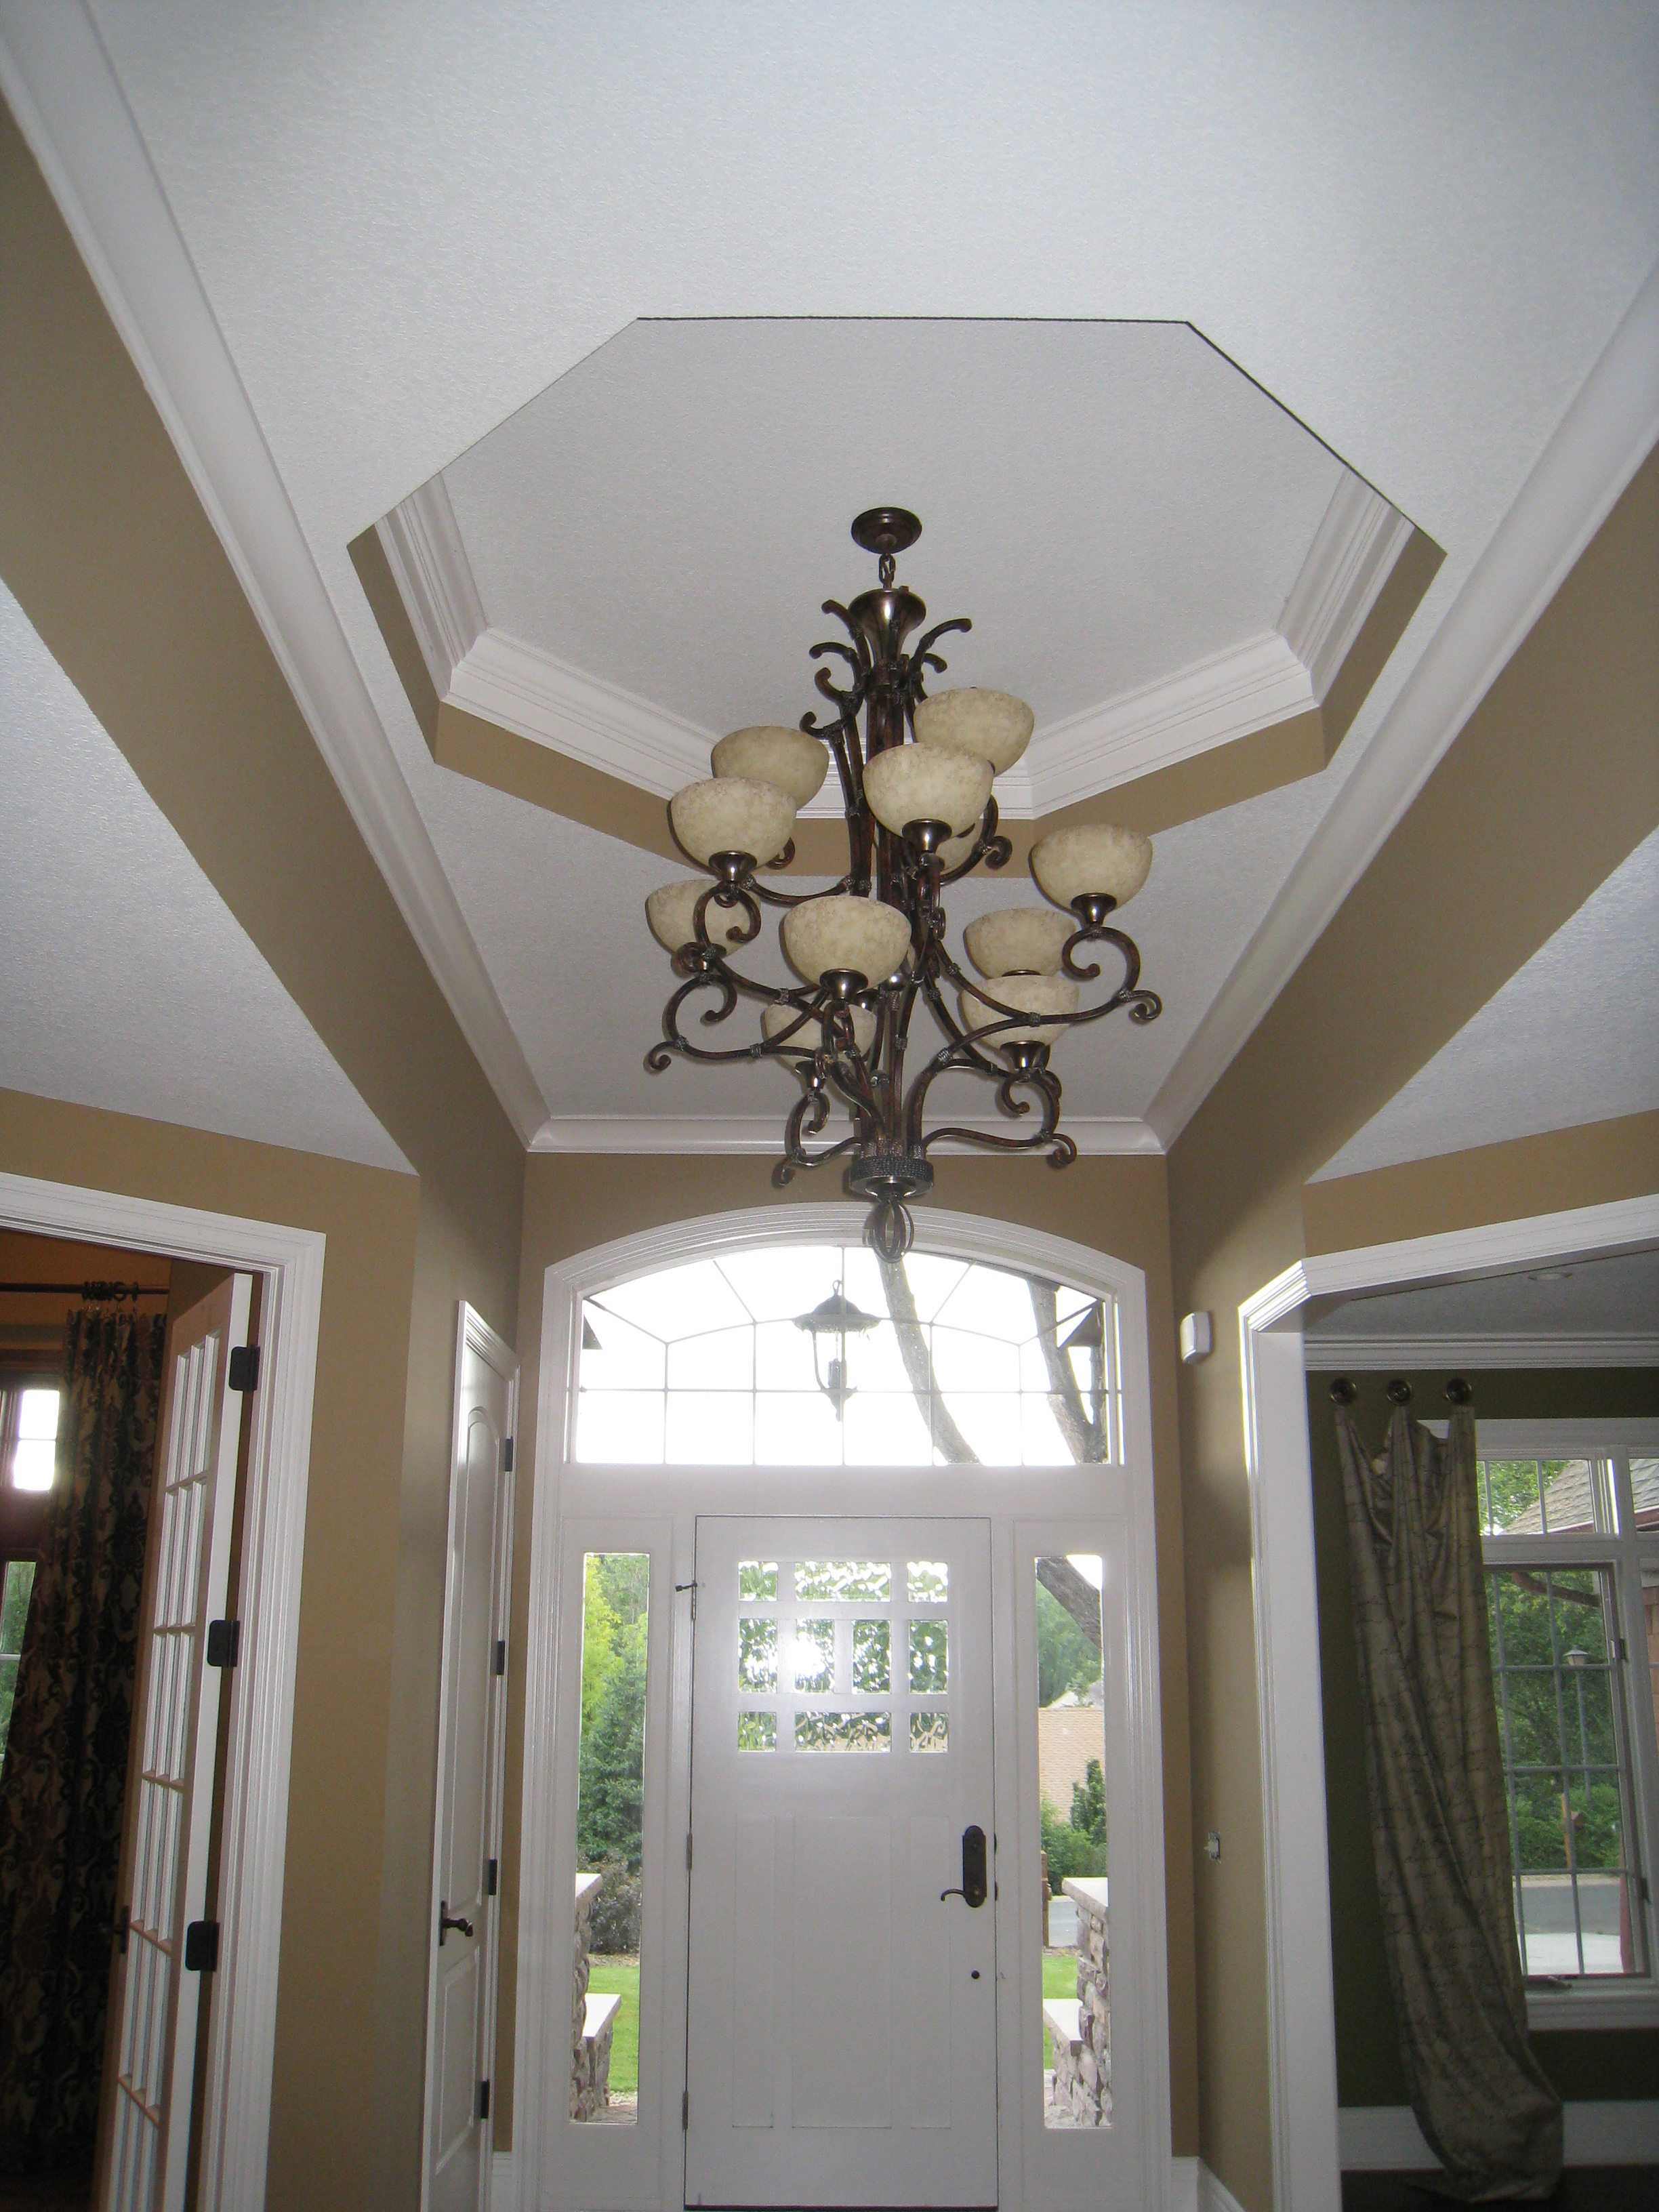 edina_upscale_home_painting_project__29_.JPG